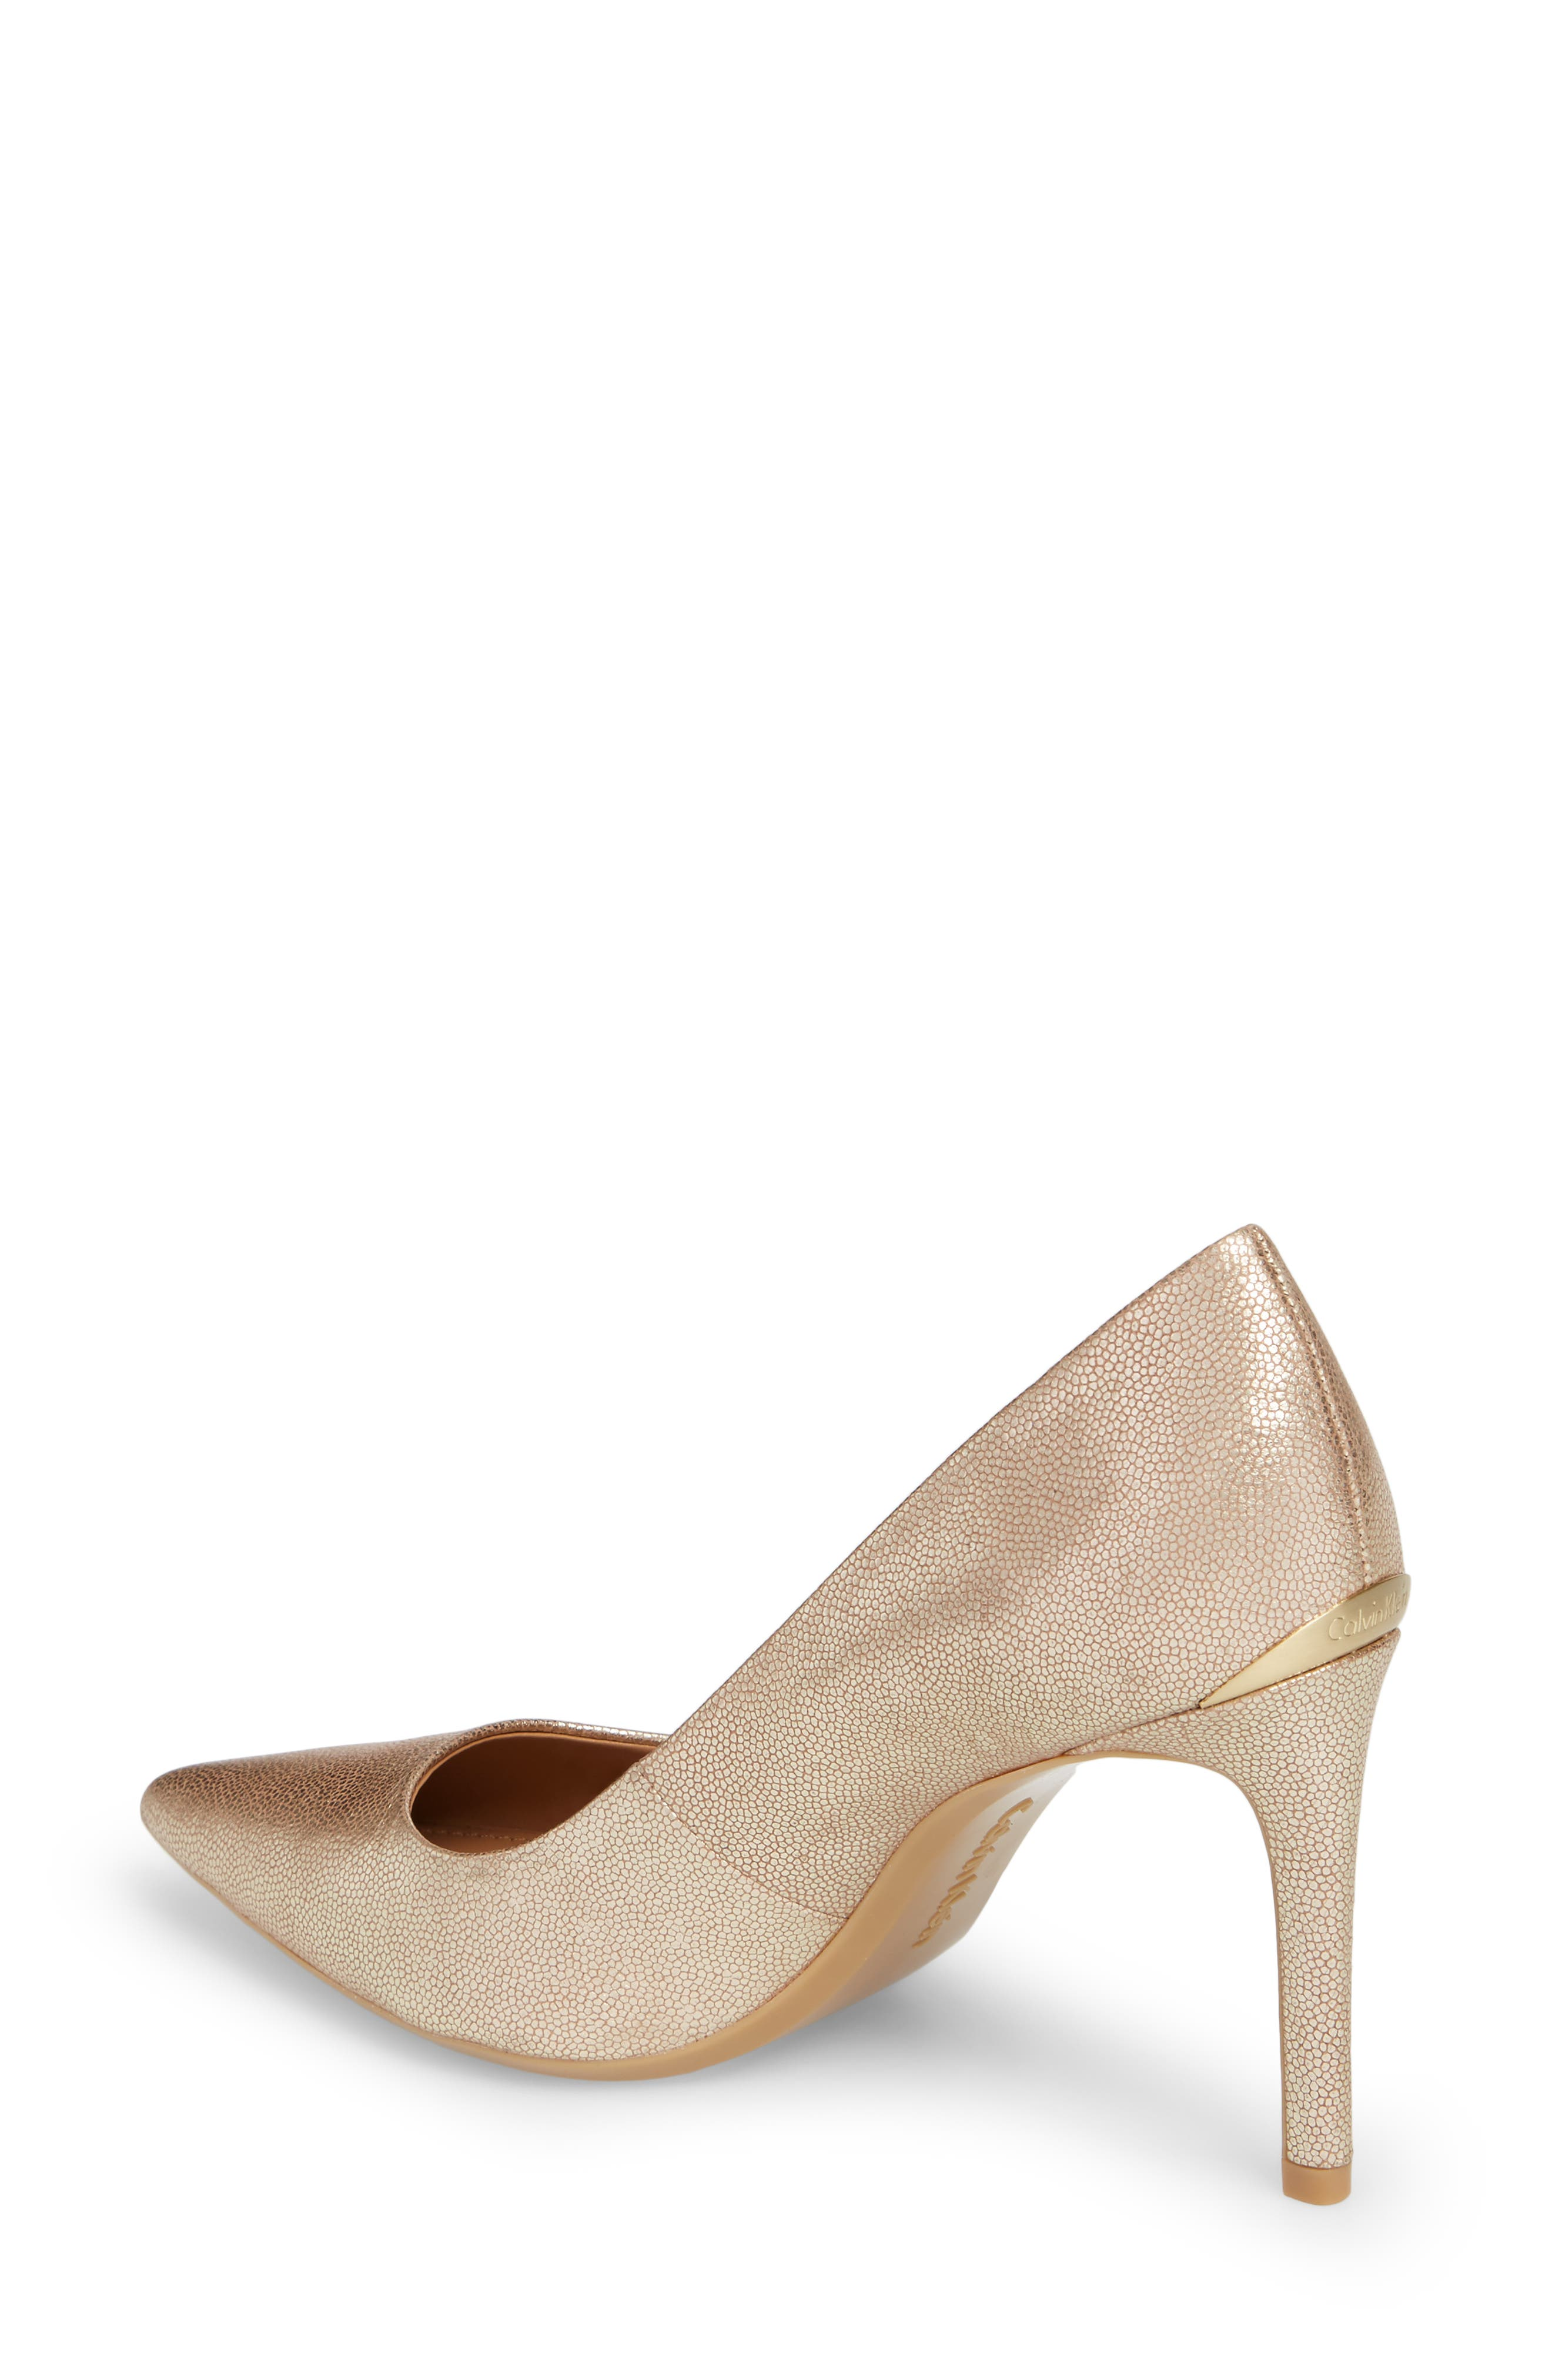 Ronna Pointy Toe Pump,                             Alternate thumbnail 2, color,                             PLATINUM LEATHER